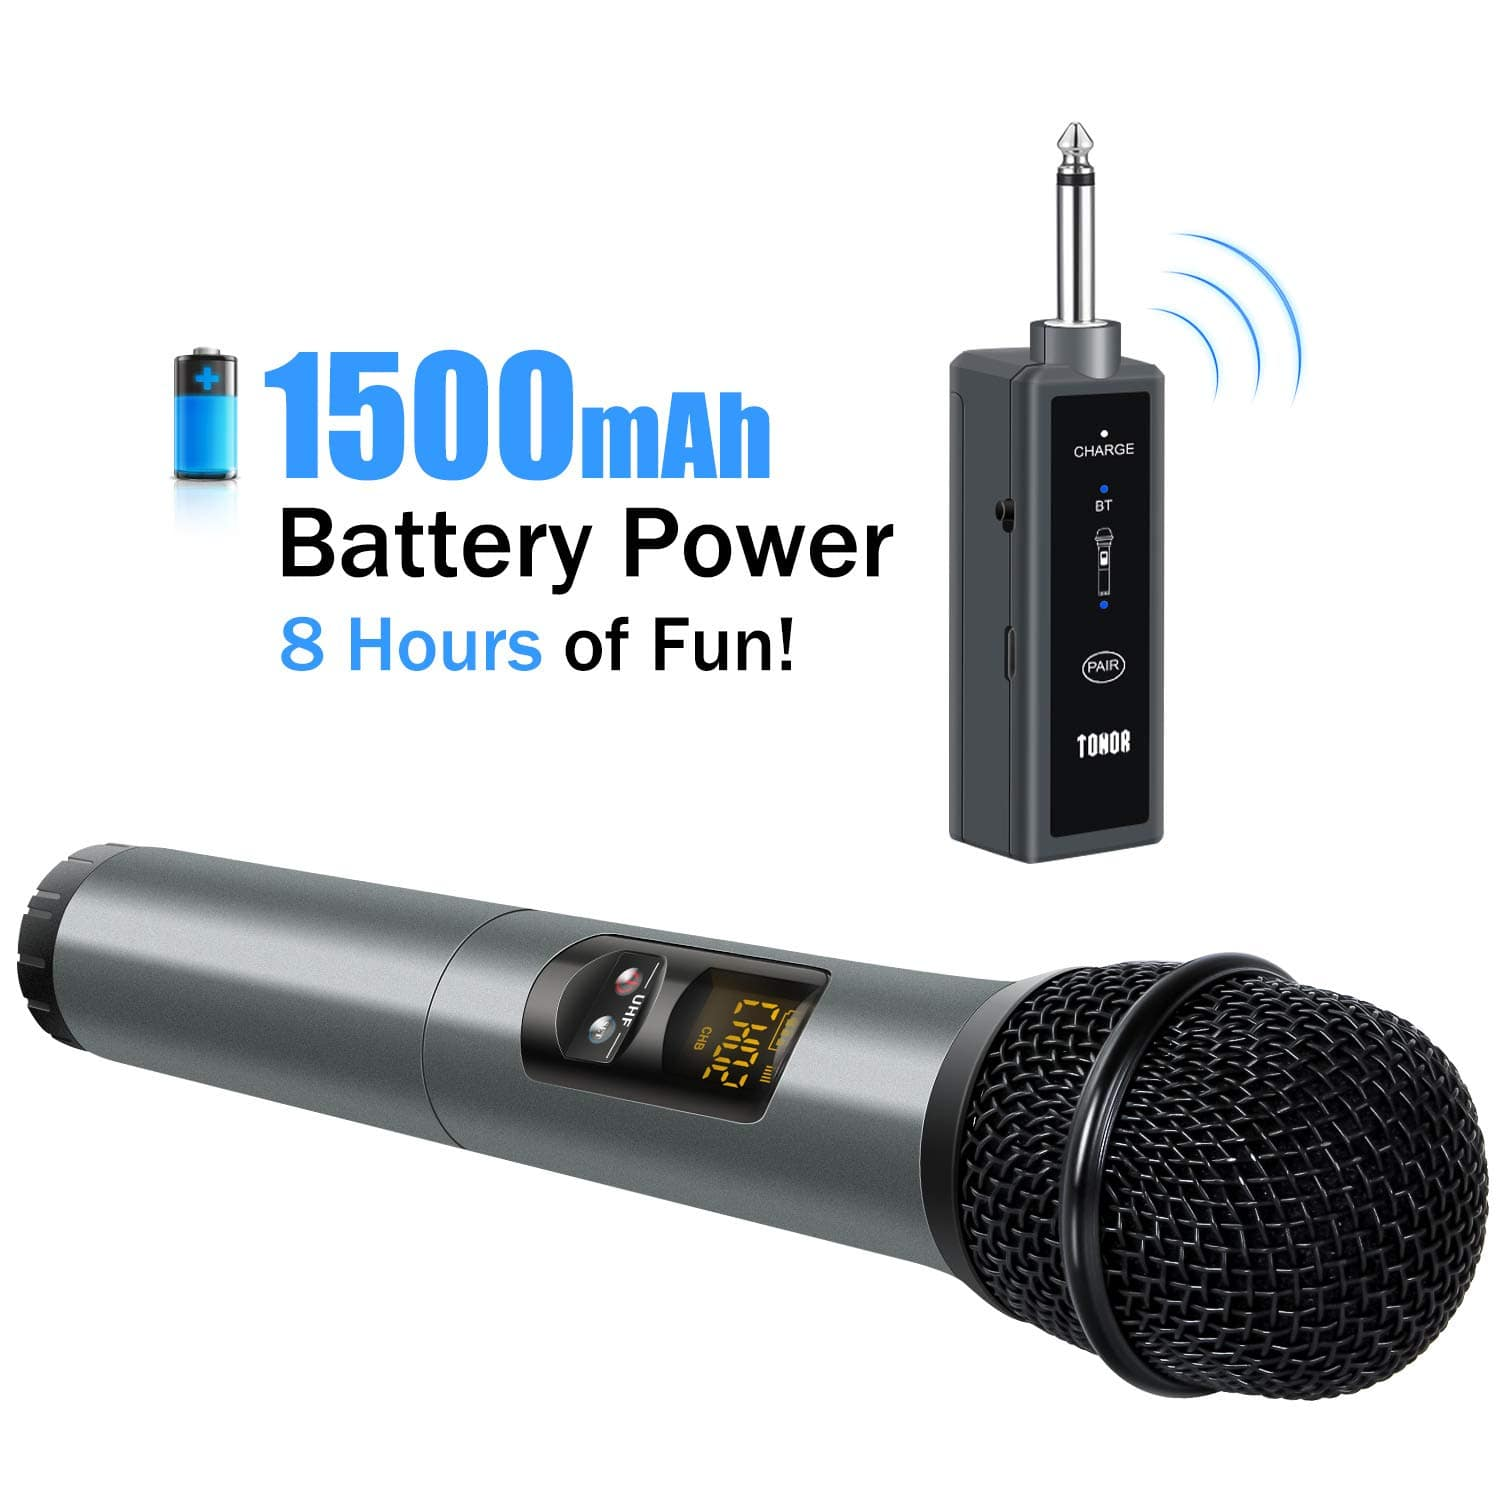 Amazon: UHF Wireless Microphone Handheld Mic with Bluetooth Receiver 1/4 Output (Operating range: 80ft) for $20.99